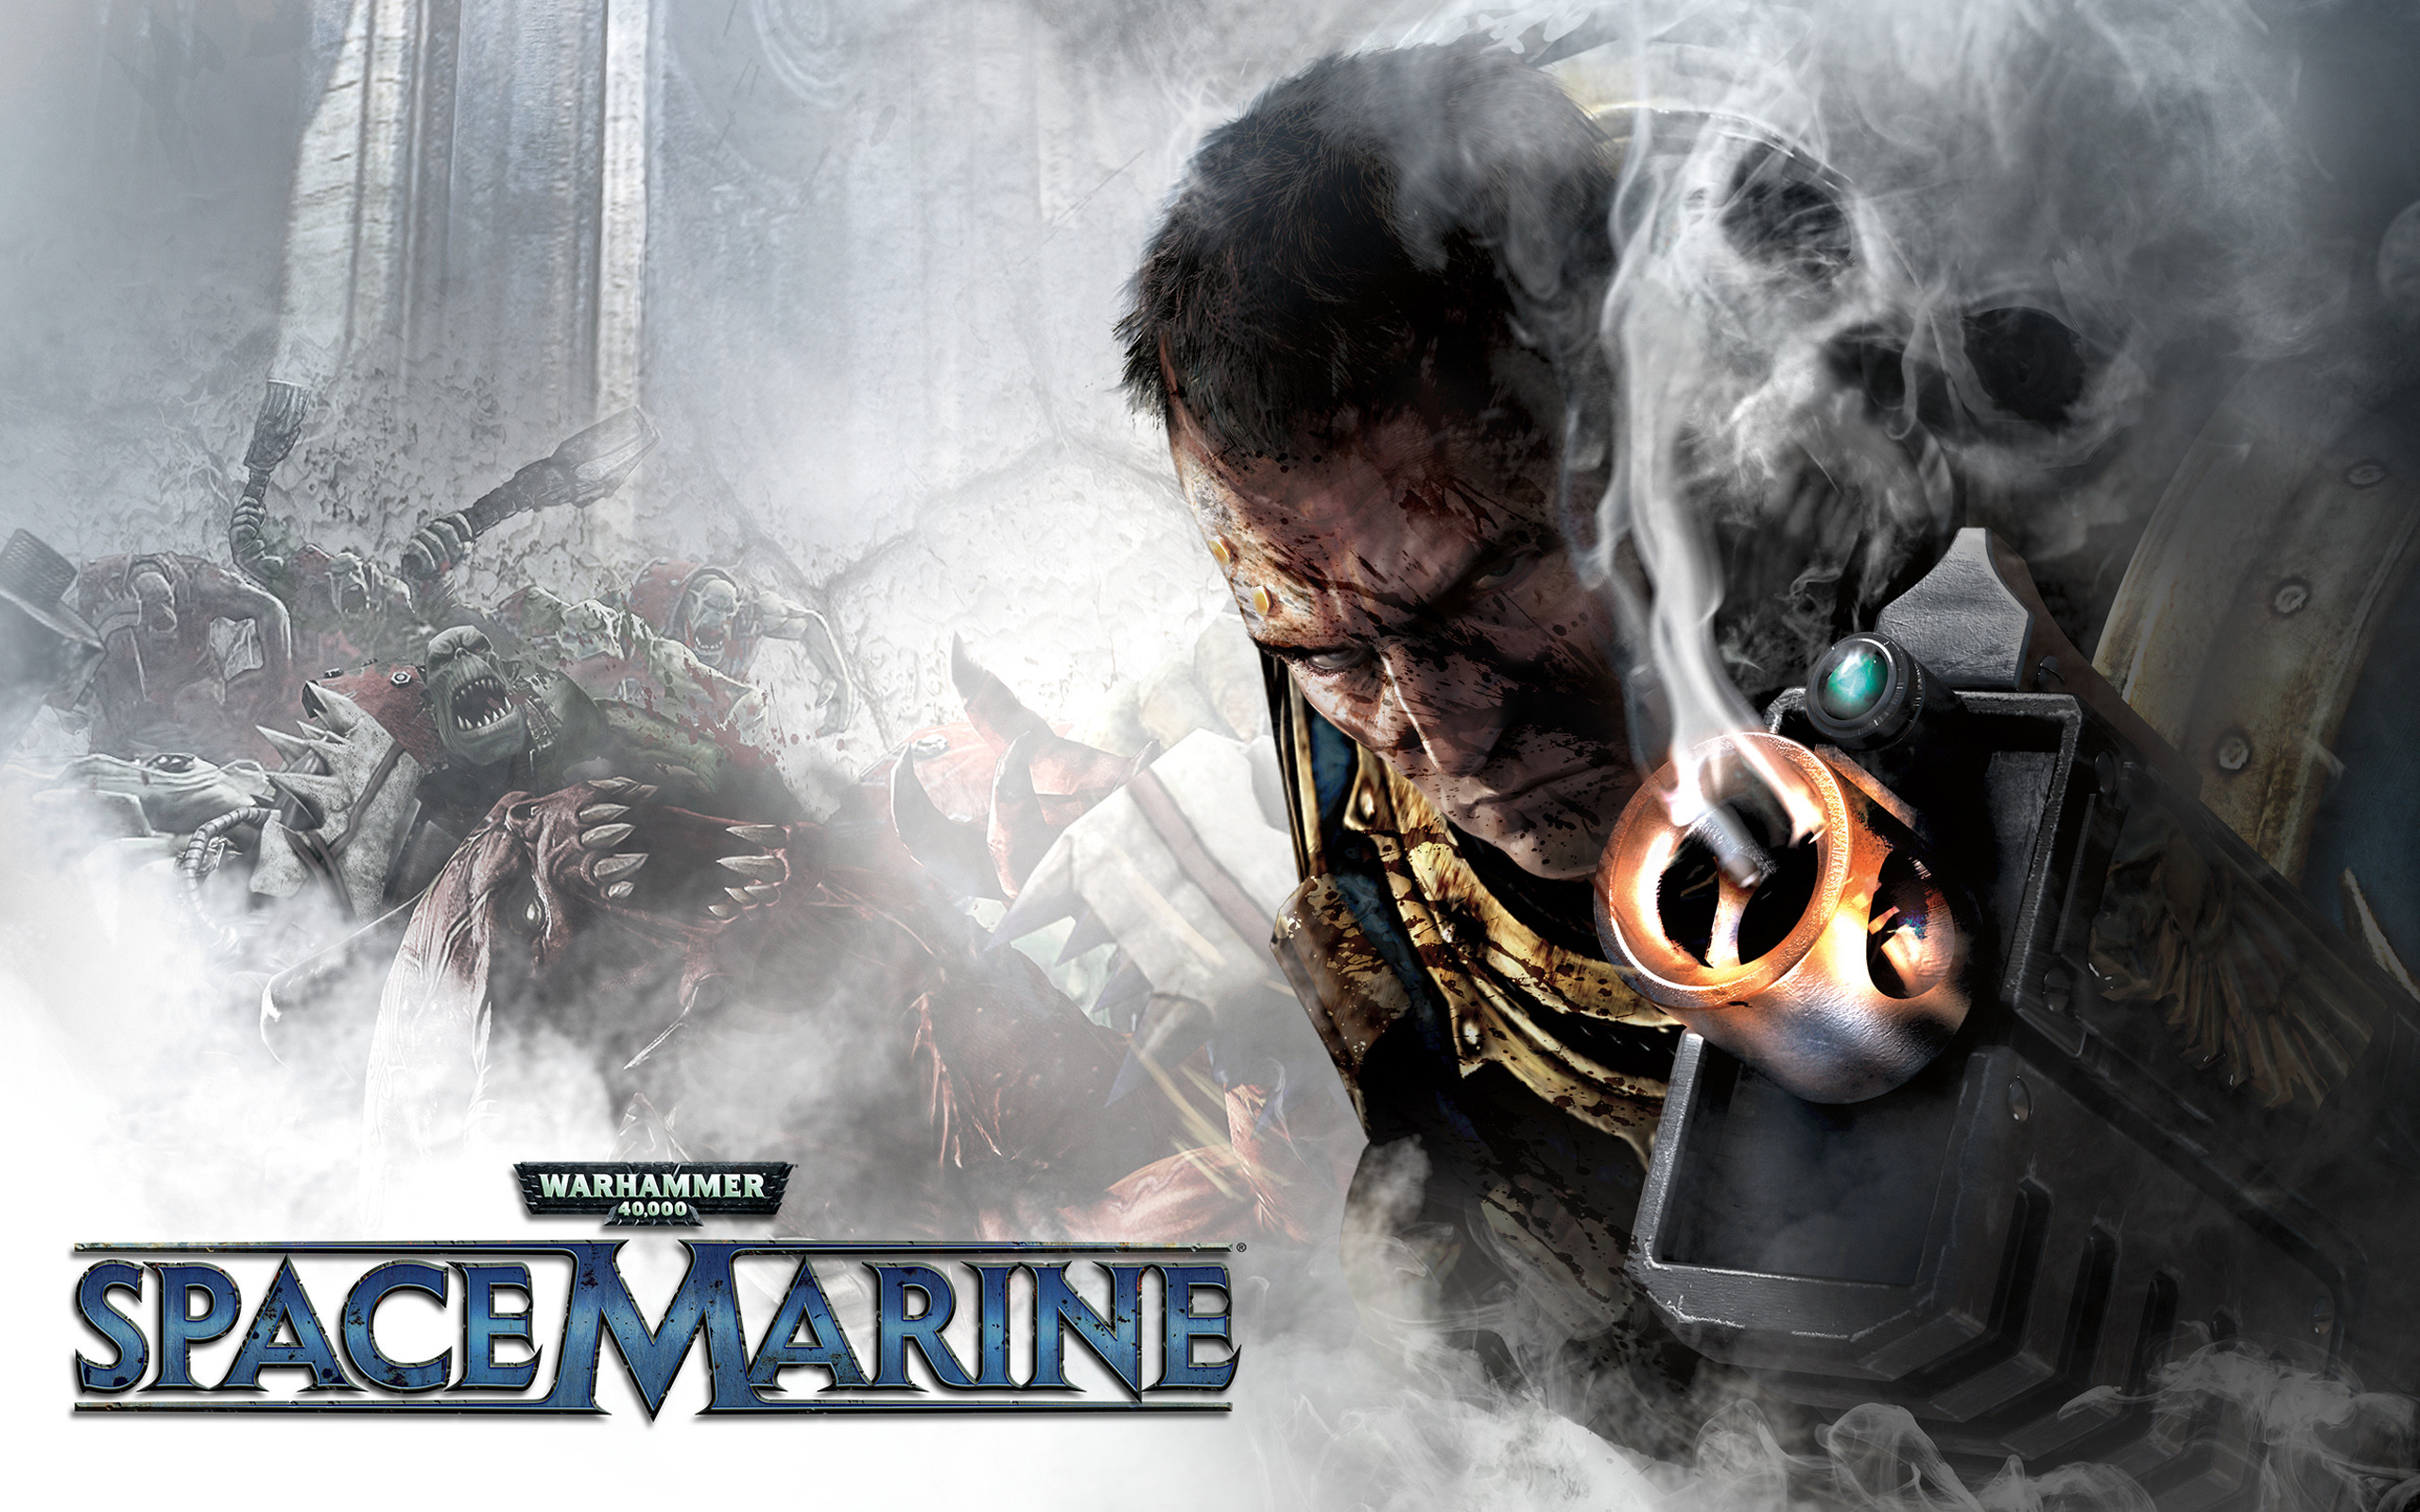 Res: 2560x1600, Warhammer Space Marine Game Facebook Covers. Original: (  Widescreen Wallpapers )